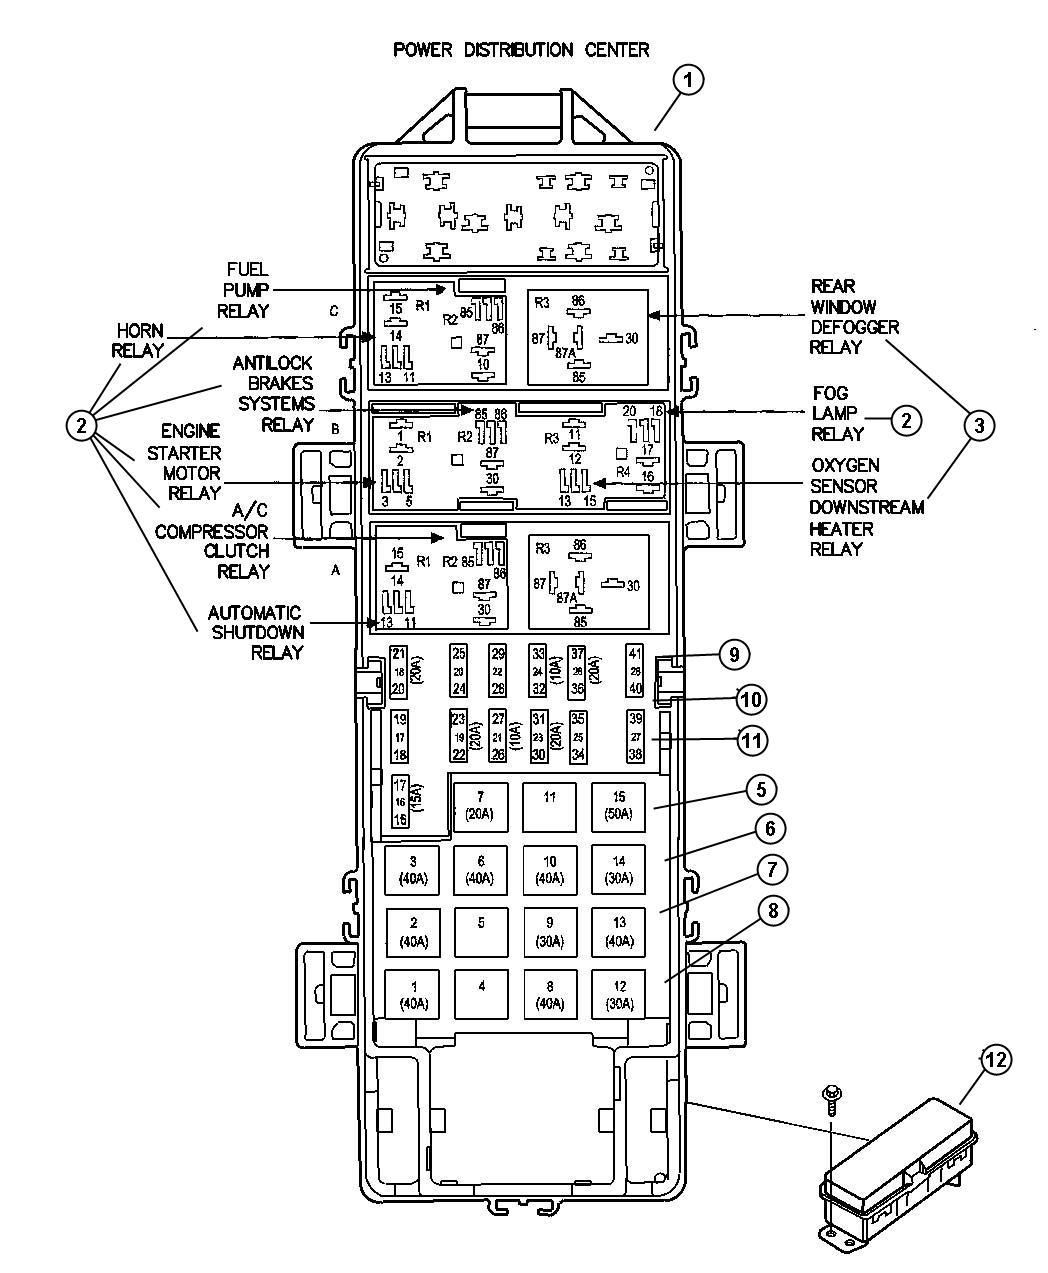 Fuse Box And Relay Diagram For Cherokee Sport Jeepforum